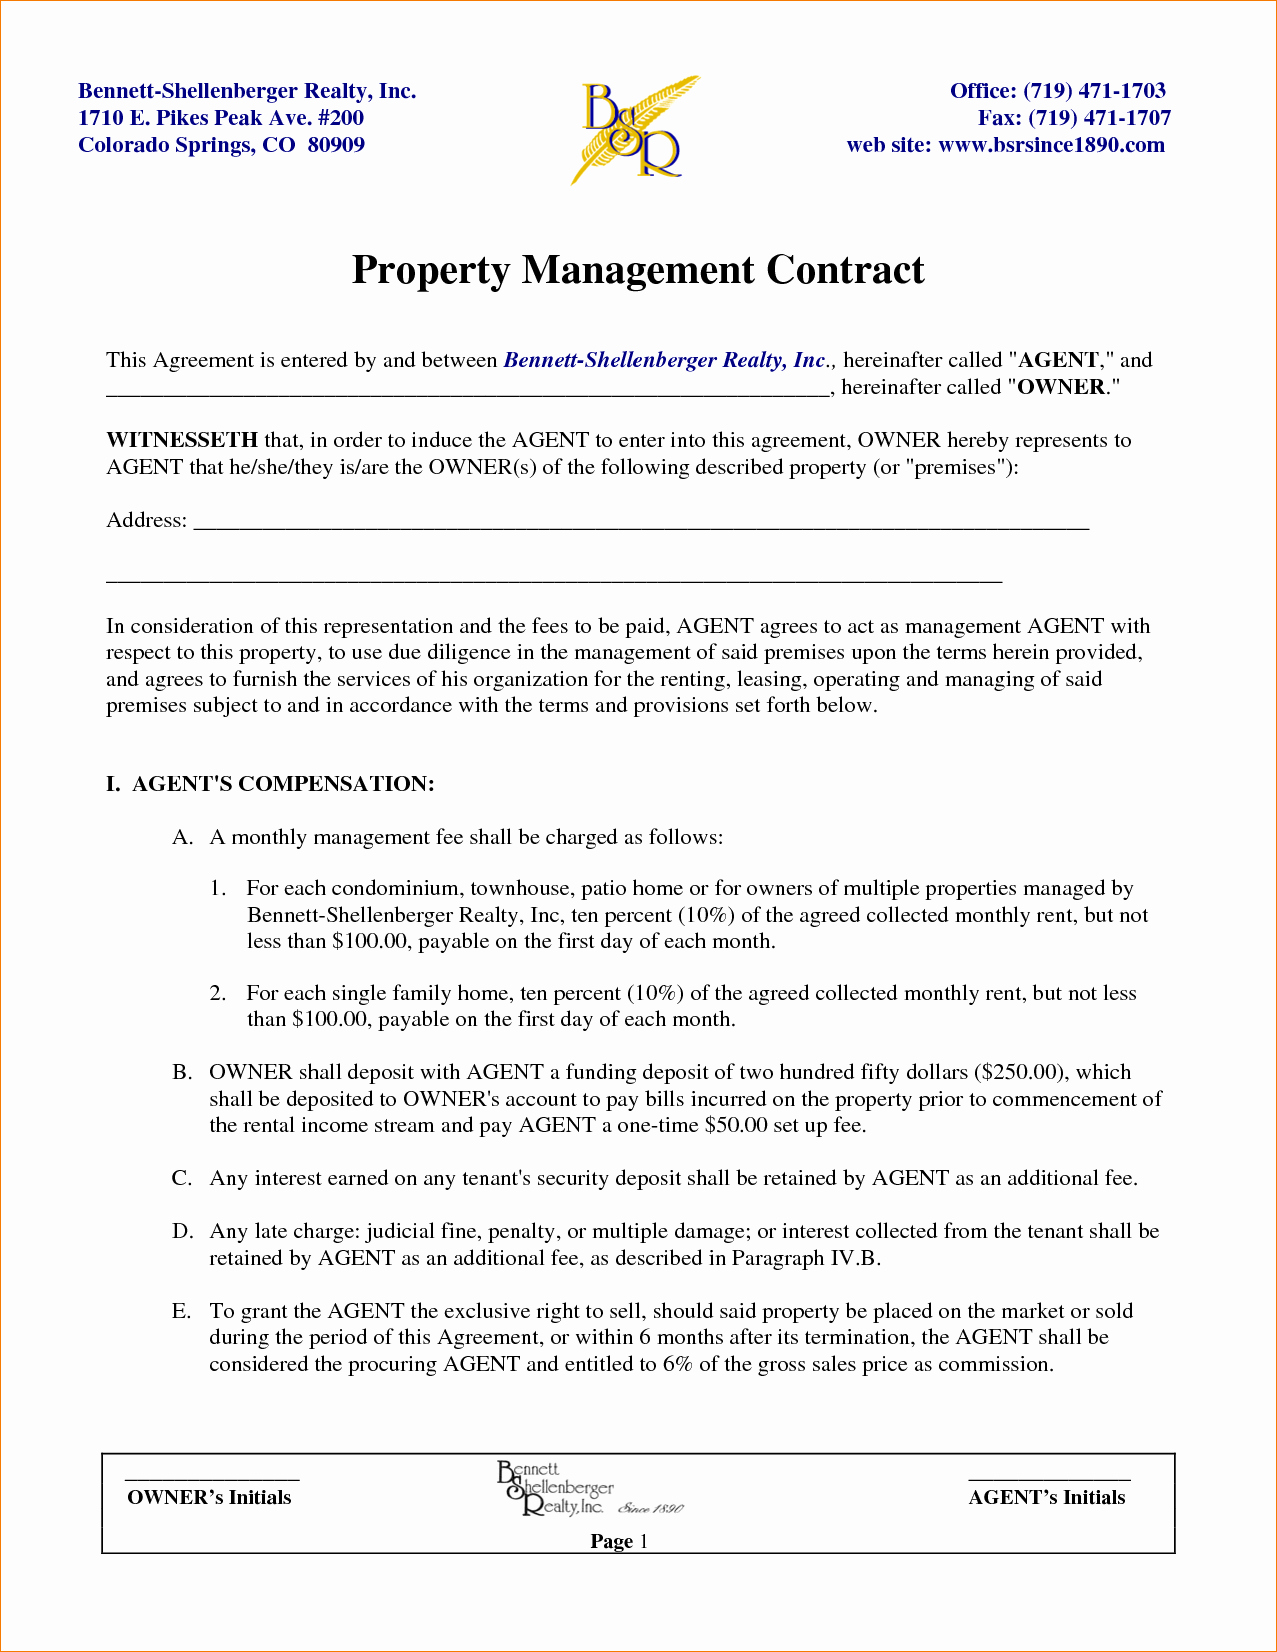 Property Management Contract Template Luxury Property Management Contracts Templates